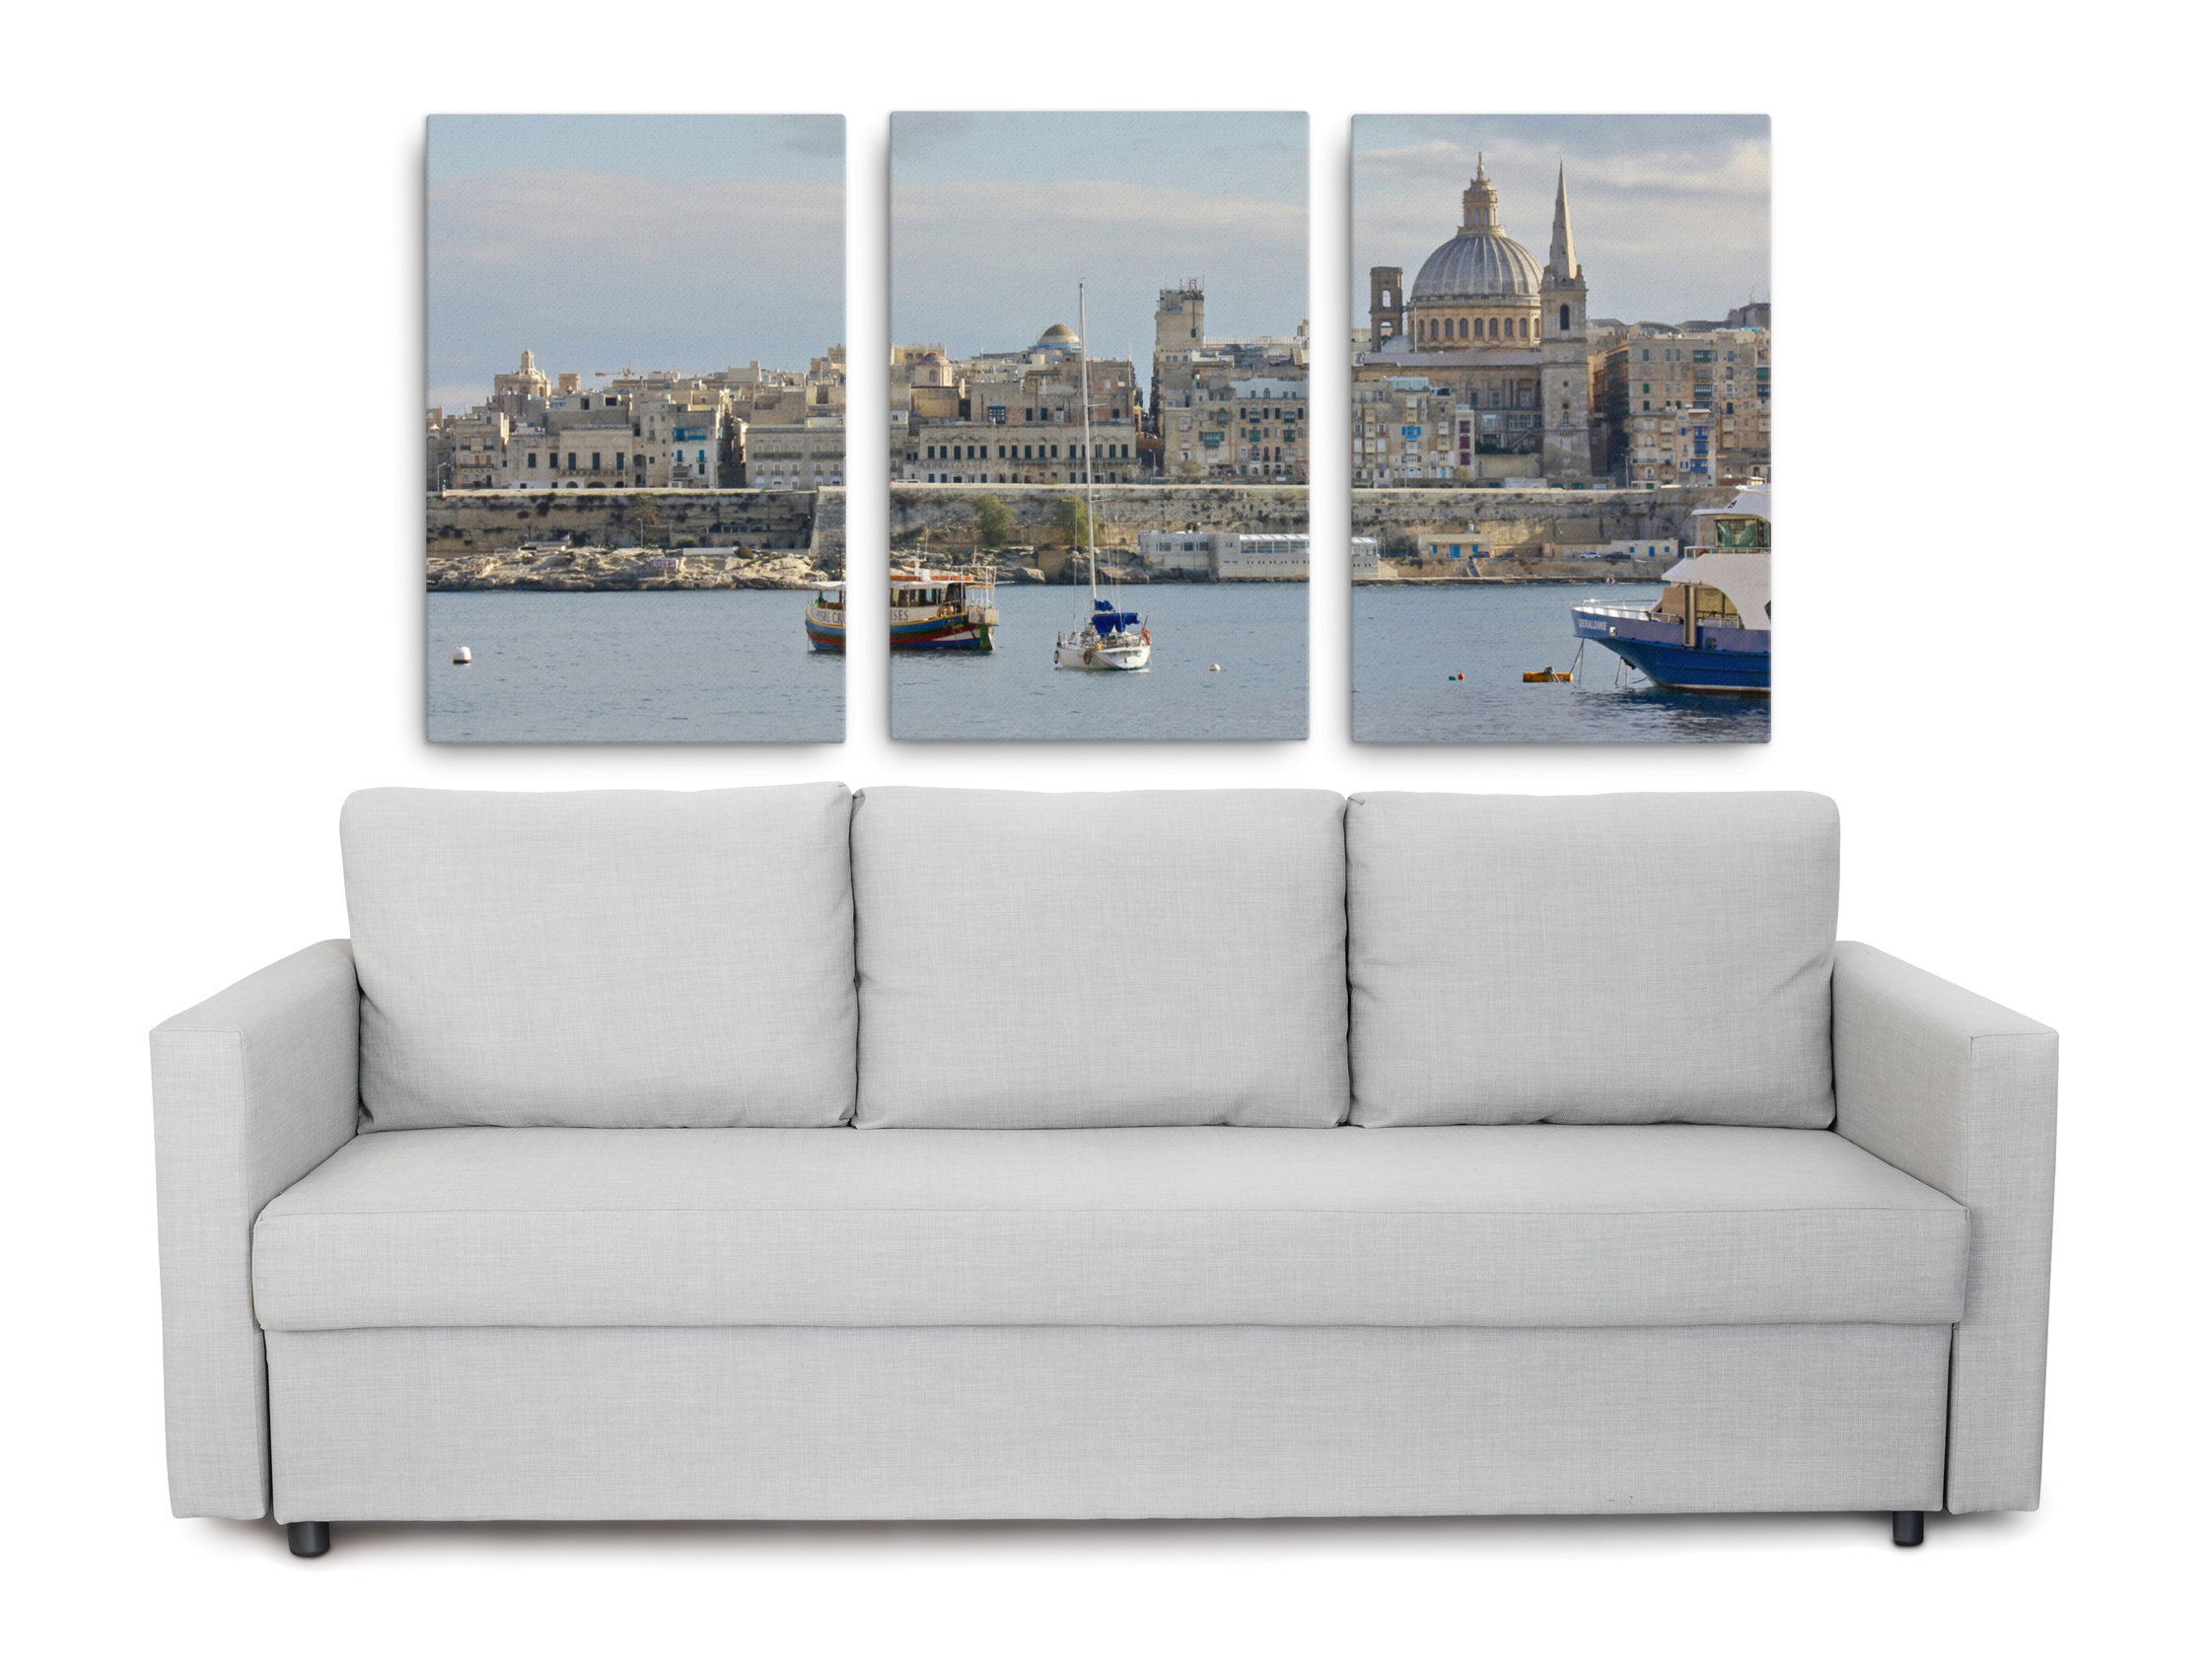 Product images of Valletta Malta images printed on canvas as a 3 piece wall art set